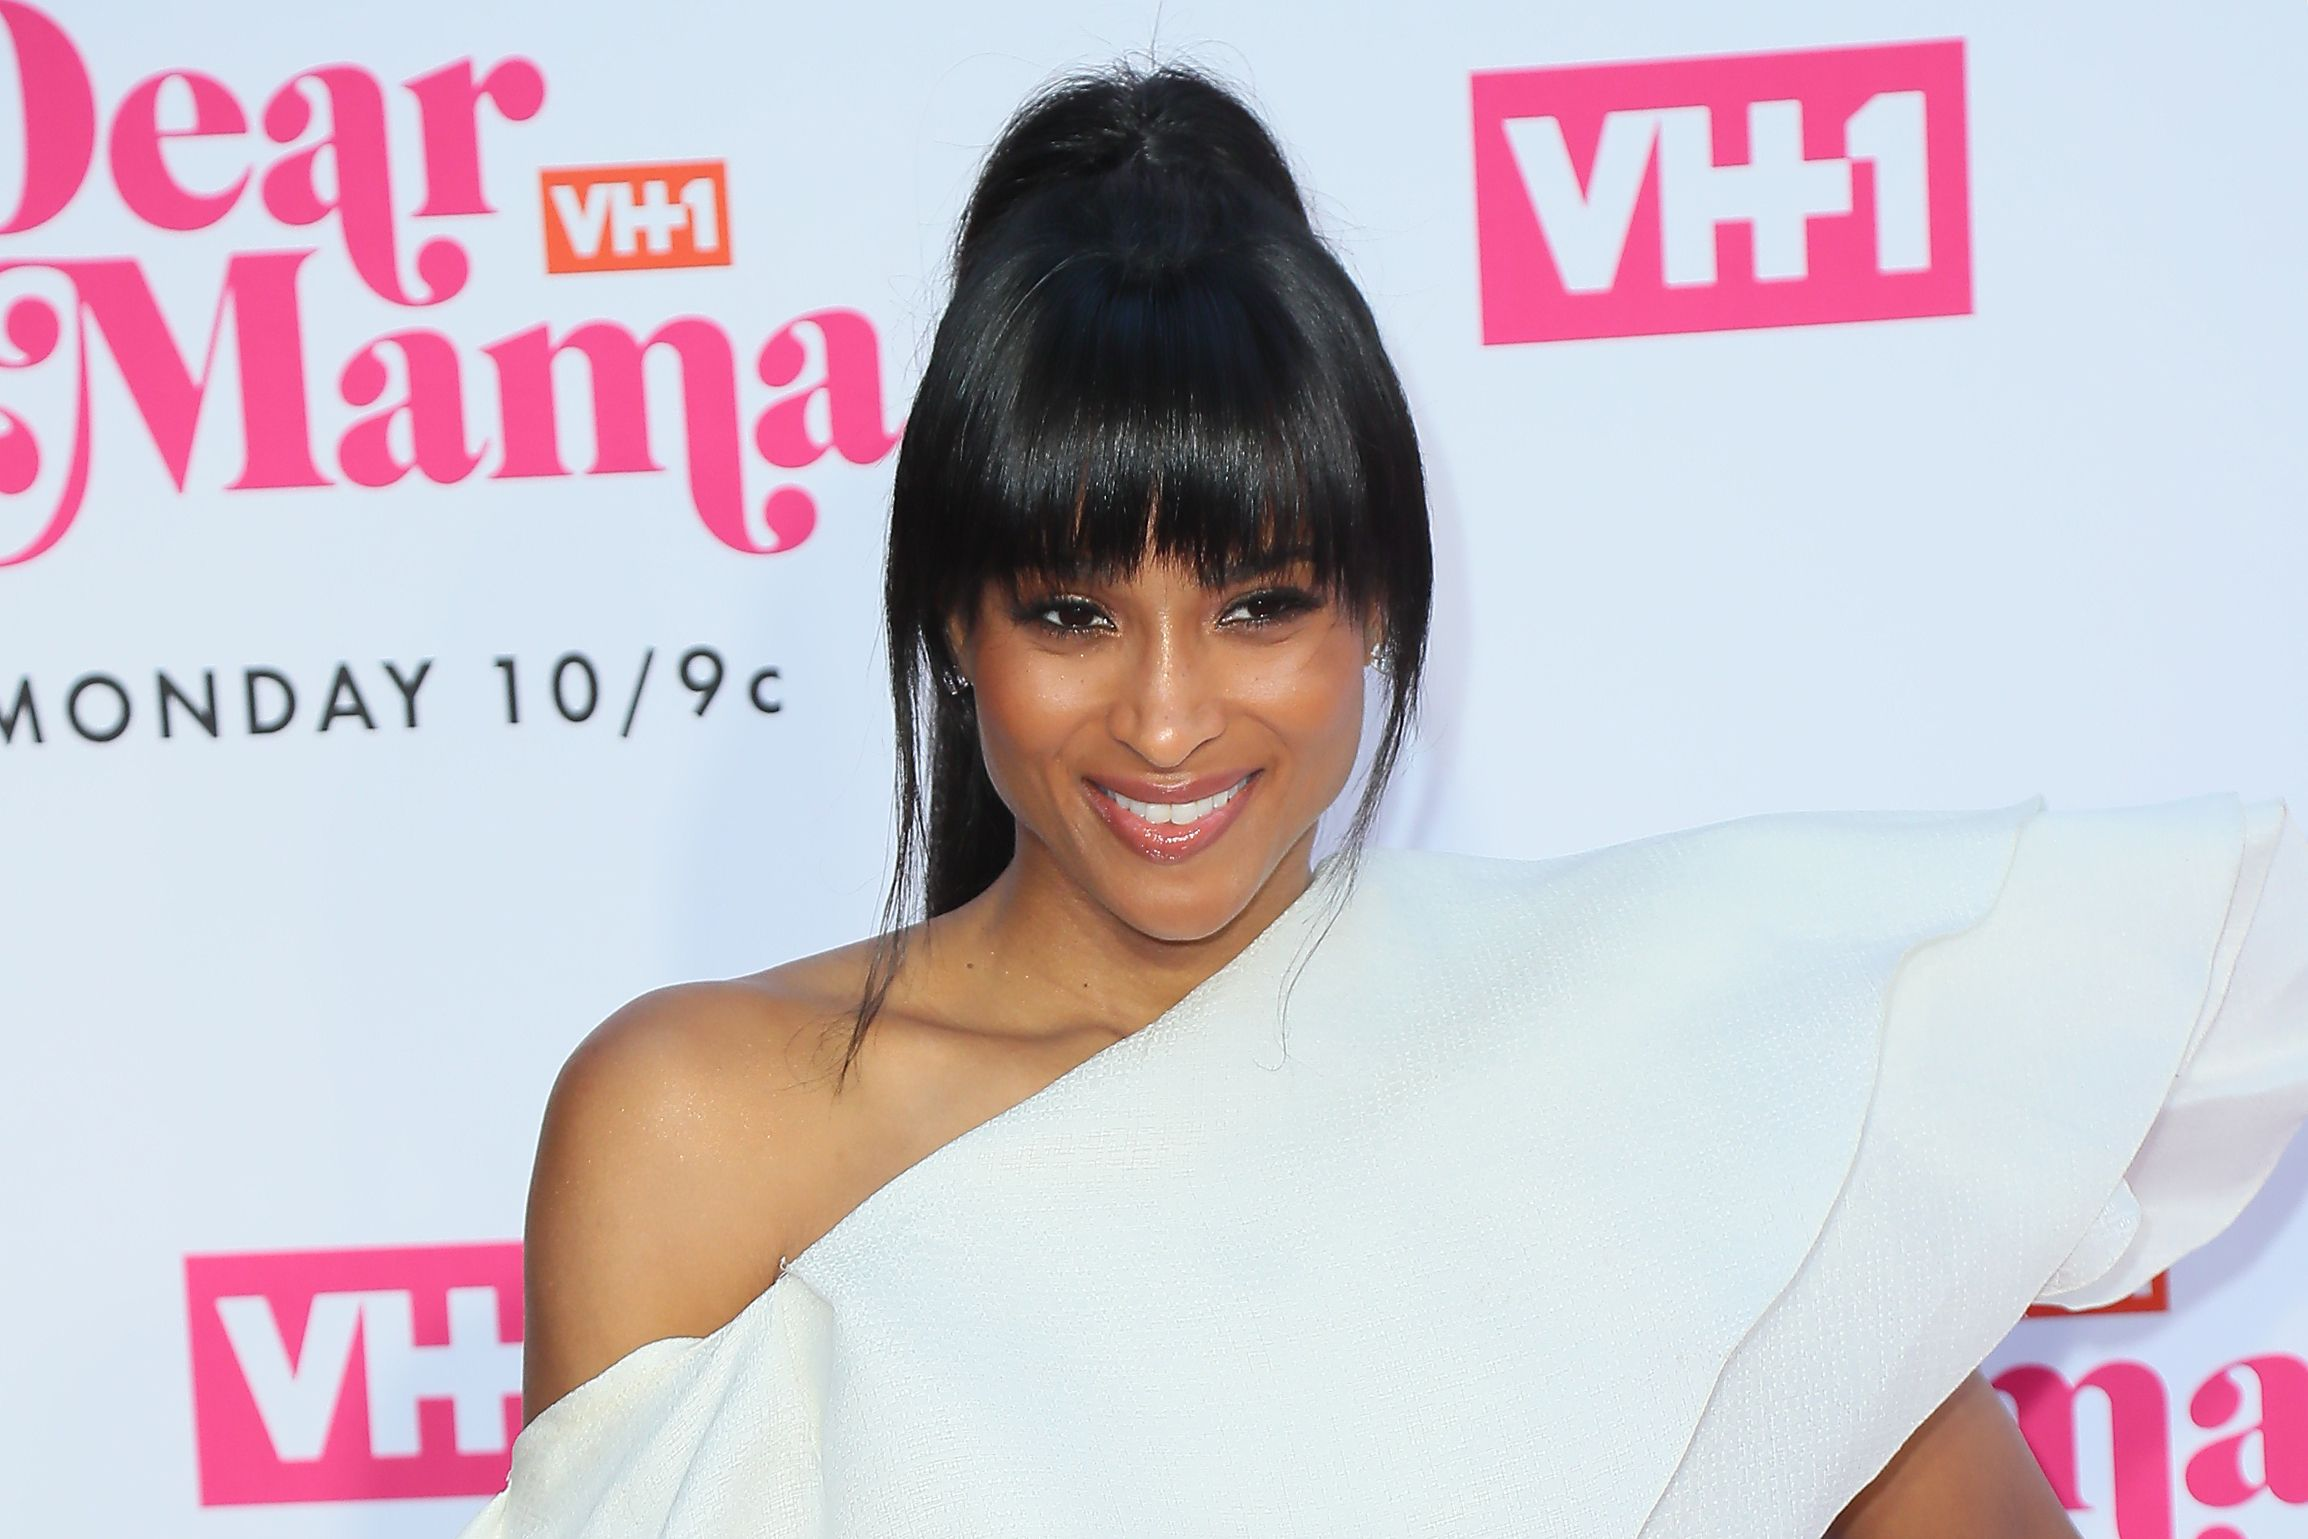 """Ciara at VH1's """"Dear Mama: A Love Letter To Mom"""" event on May 02, 2019. 